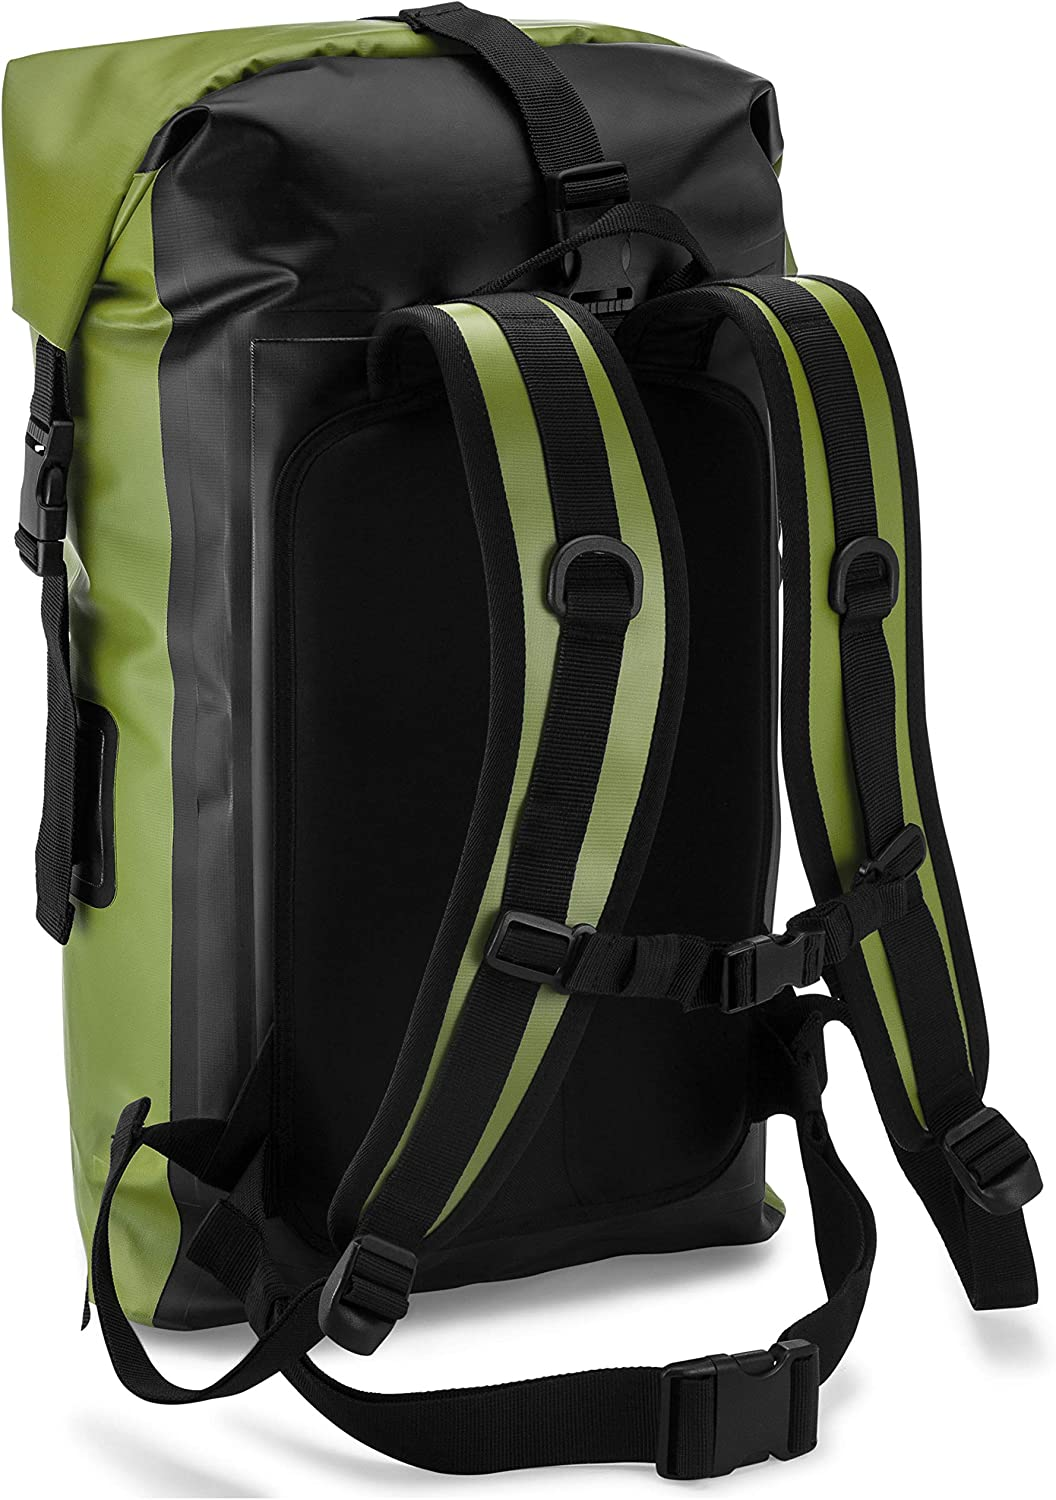 Earth Pak Waterproof Backpack 55L Heavy Duty Roll-Top Closure with Easy Access Front-Zippered Pocket and Cushioned Padded Back Panel for Comfort; IPX8 Waterproof Phone Case Included 35L